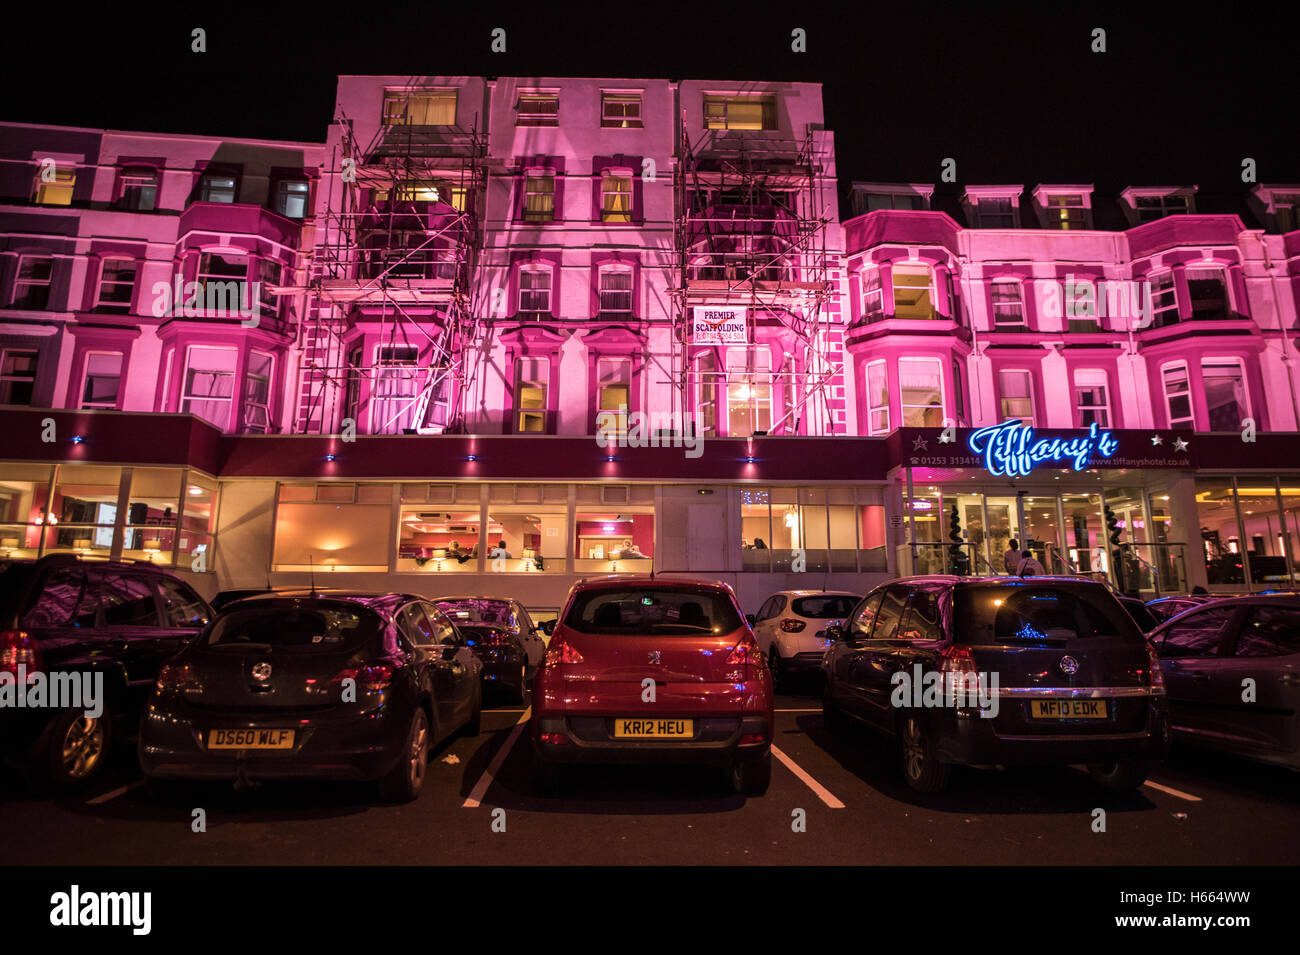 Brightly lit, magenta pink hotel in Blackpool, England during autumn while the famous Black Illuminations are lit up Stock Photo